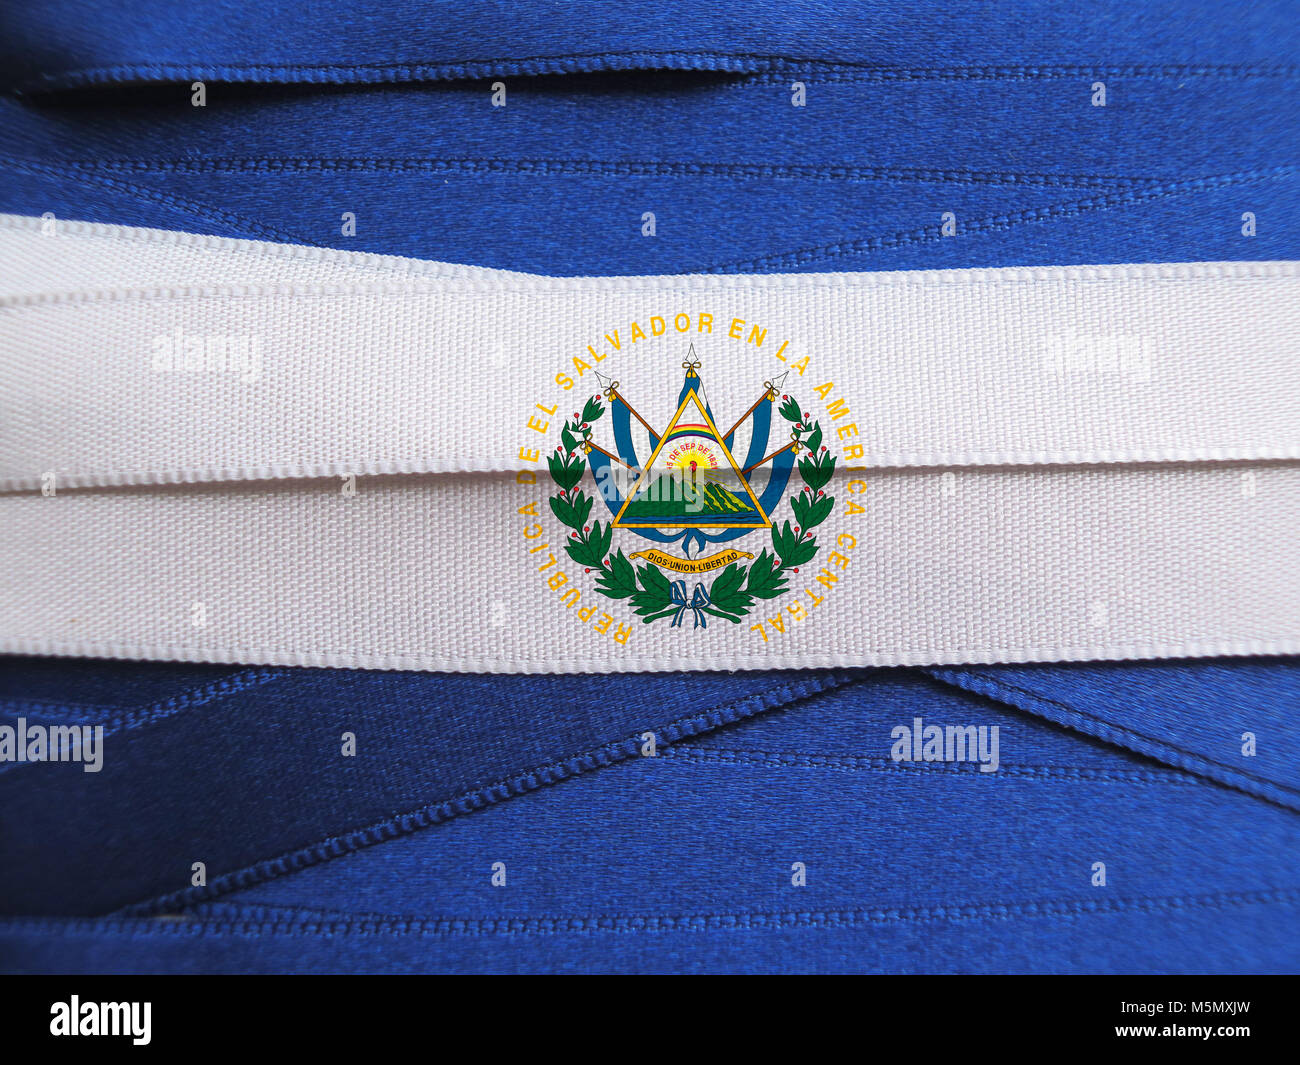 El Salvador flag or banner made with blue and white ribbons - Stock Image